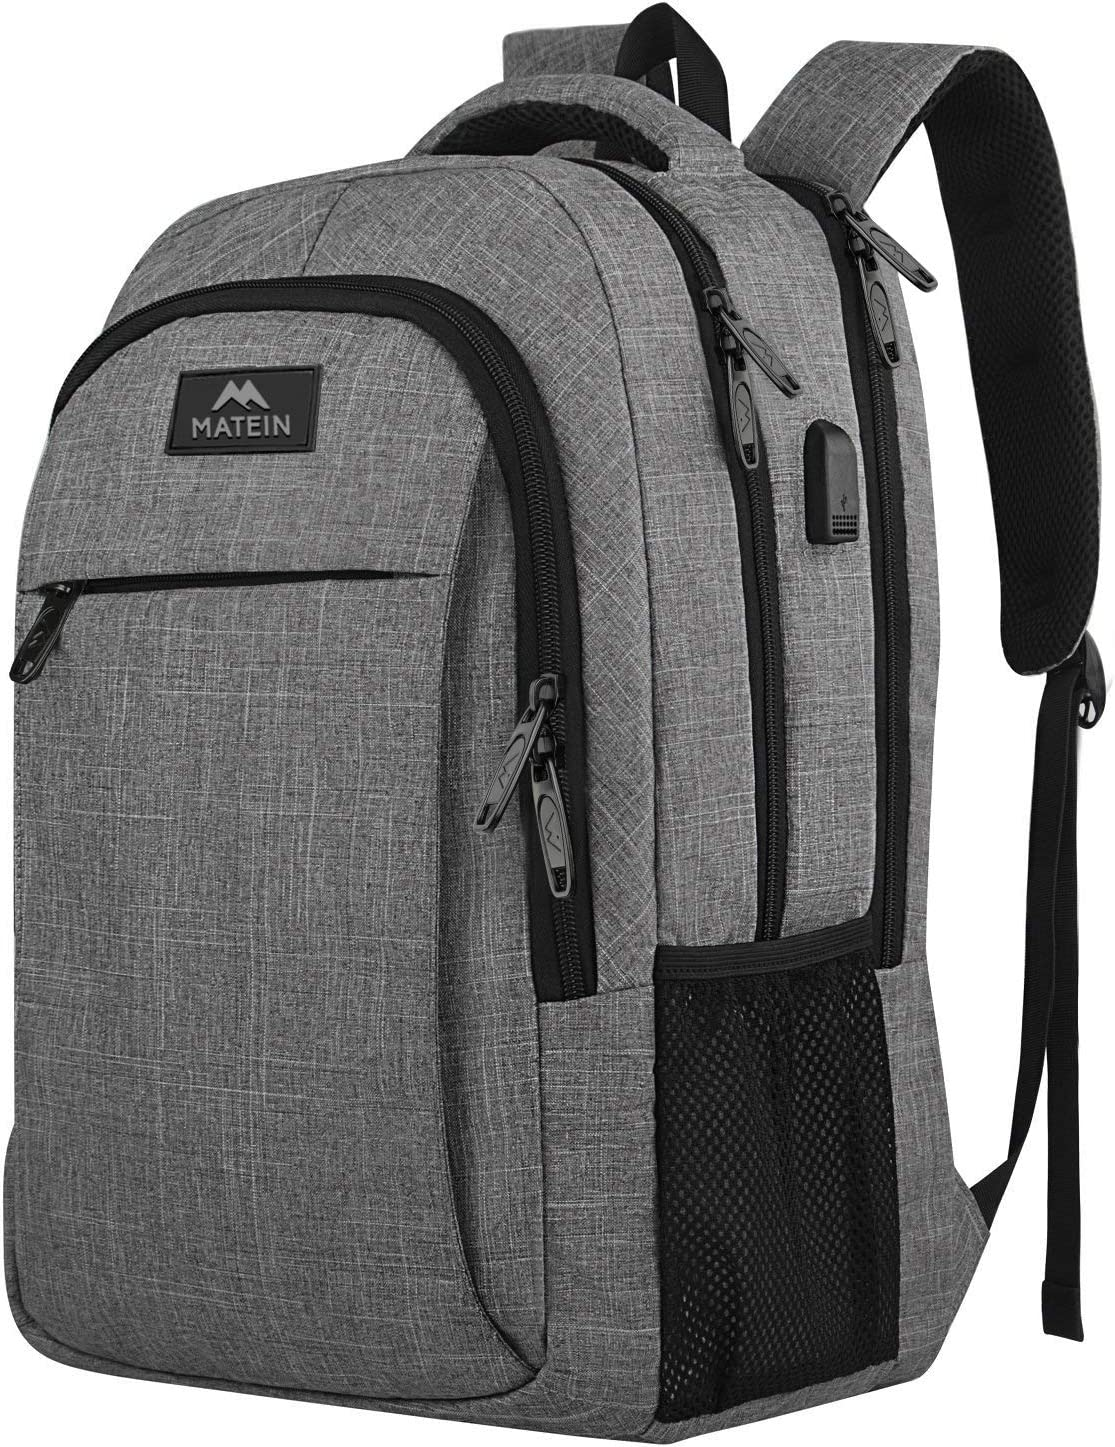 Best law school backpacks, Backpack for law school, Law school backpack, Travel Laptop Backpack, Best Backpack for Law School, Best Backpack for Law School Large Laptop, Best Briefcase for Law School, Best Messenger Bag for Law School, Best Backpack for Law School Female Students, Best Rolling Bag for Law School,